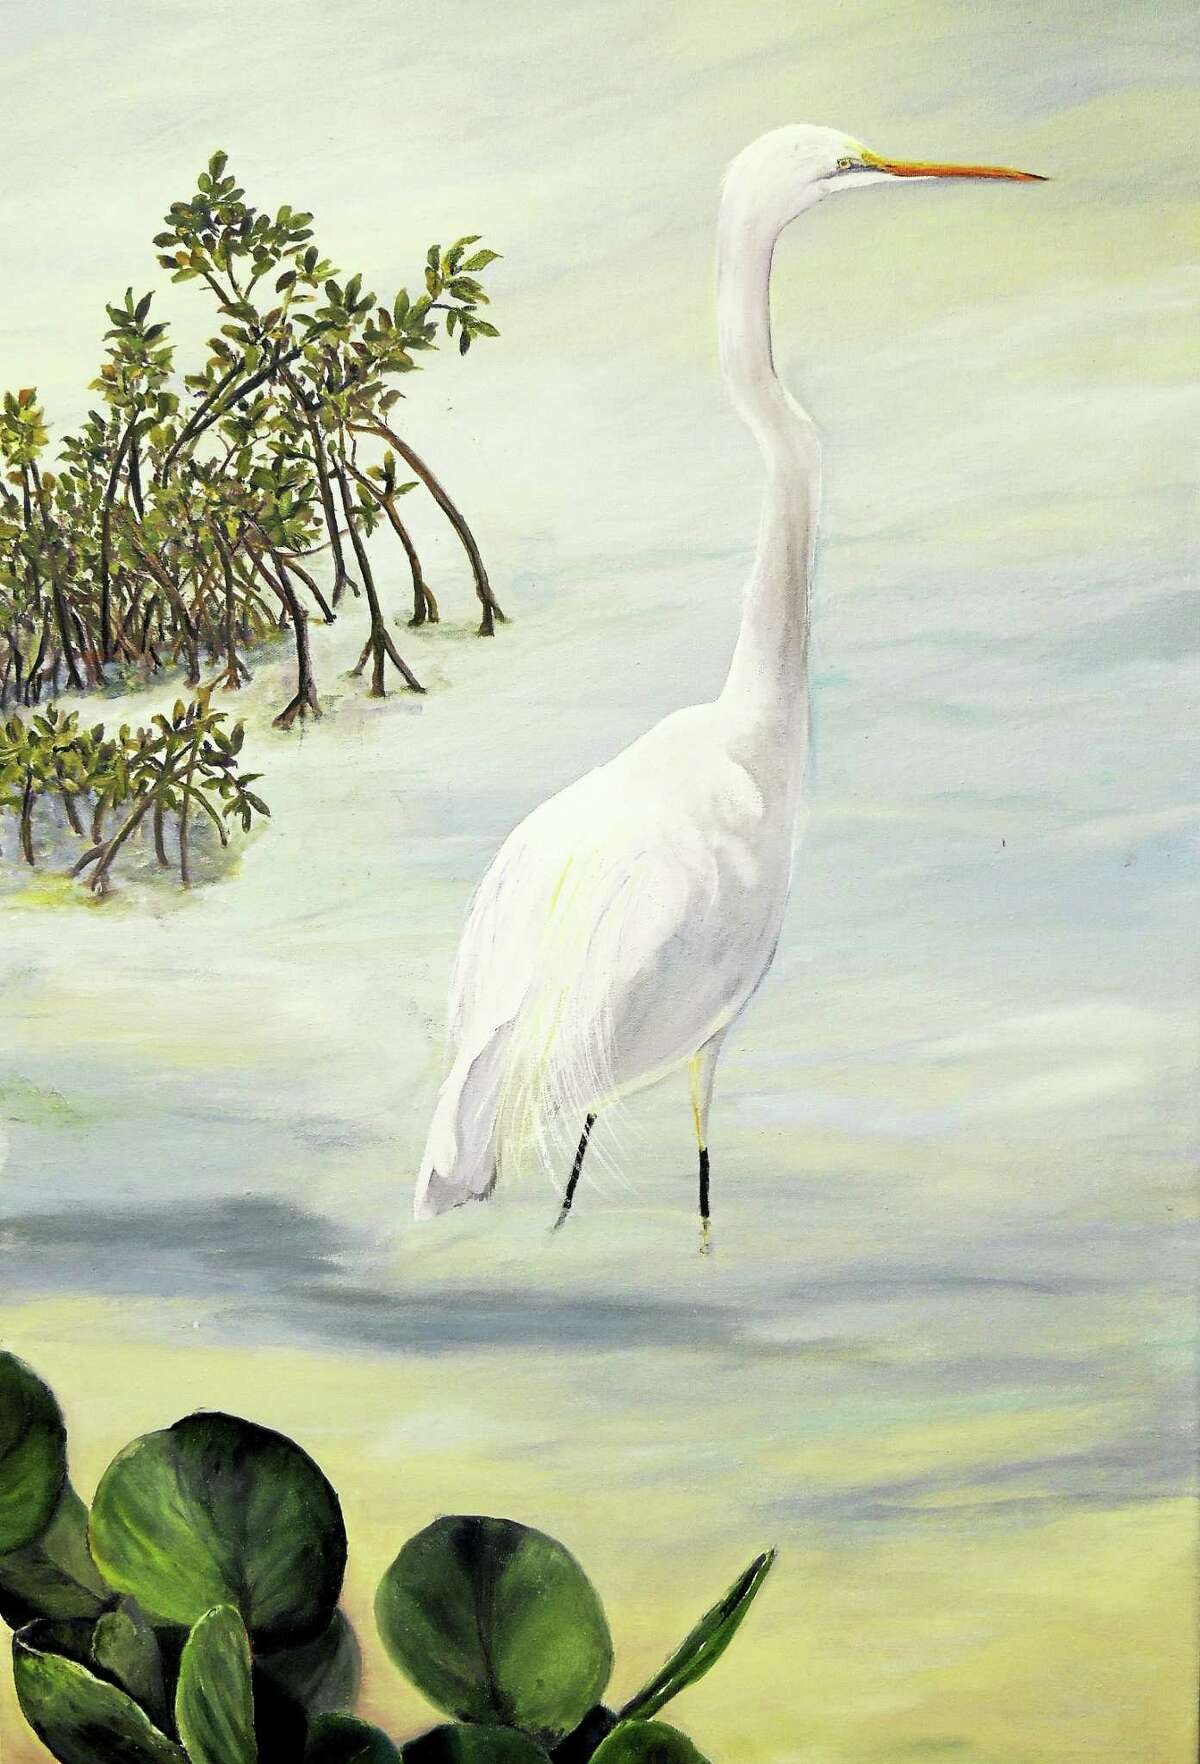 Contributed photoLinda McCarthy, The Heron, oil on canvas, is included in a new show at the Spectrum Gallery.